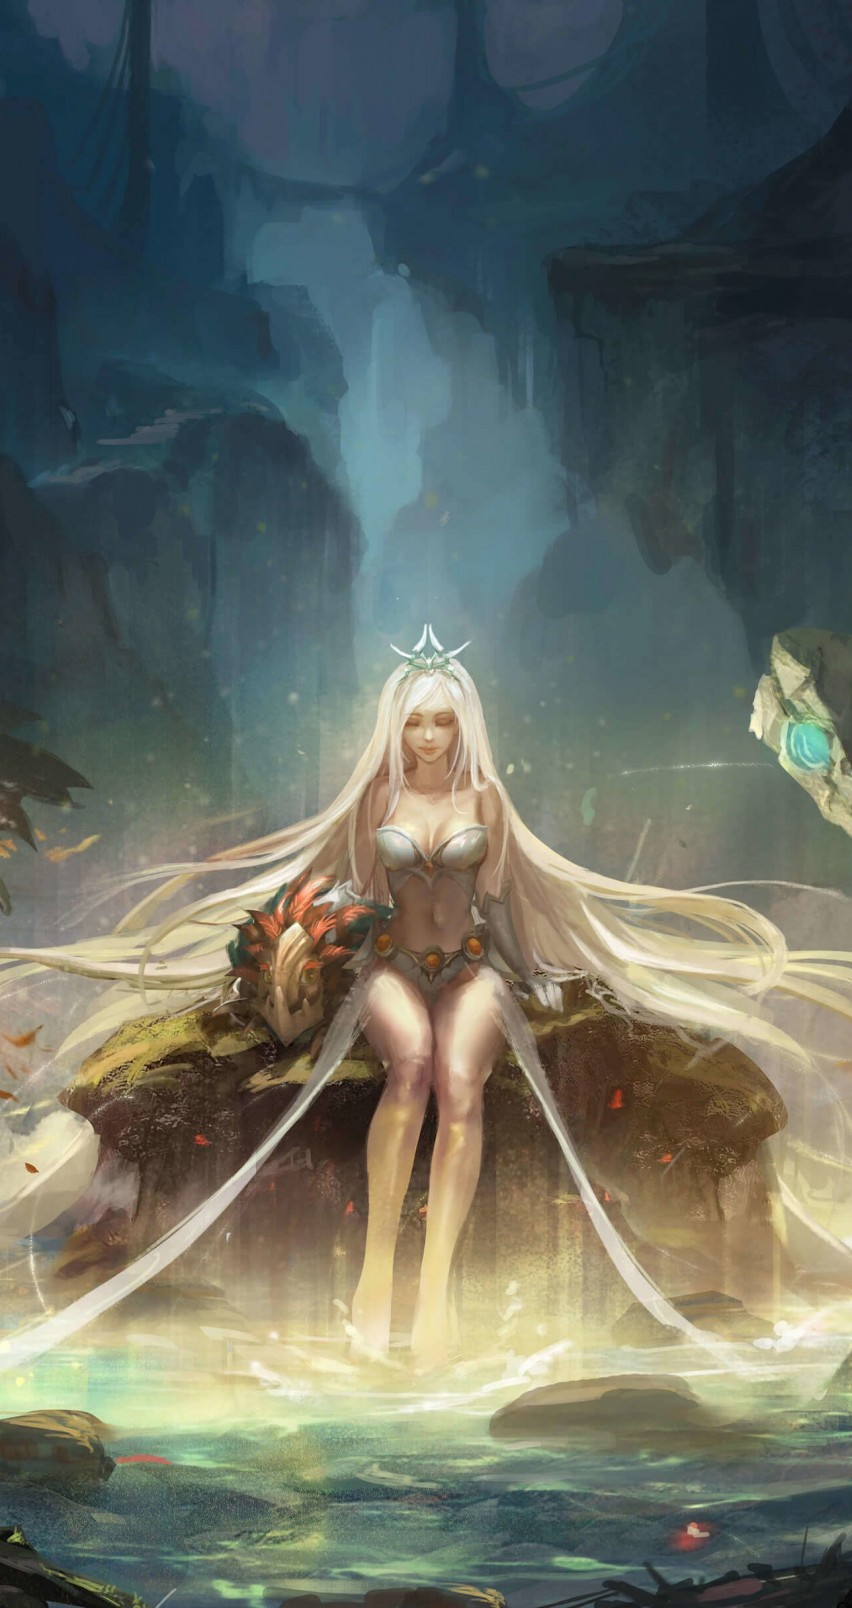 Janna - League of Legends Wallpaper for Apple iPhone 6 / 6s